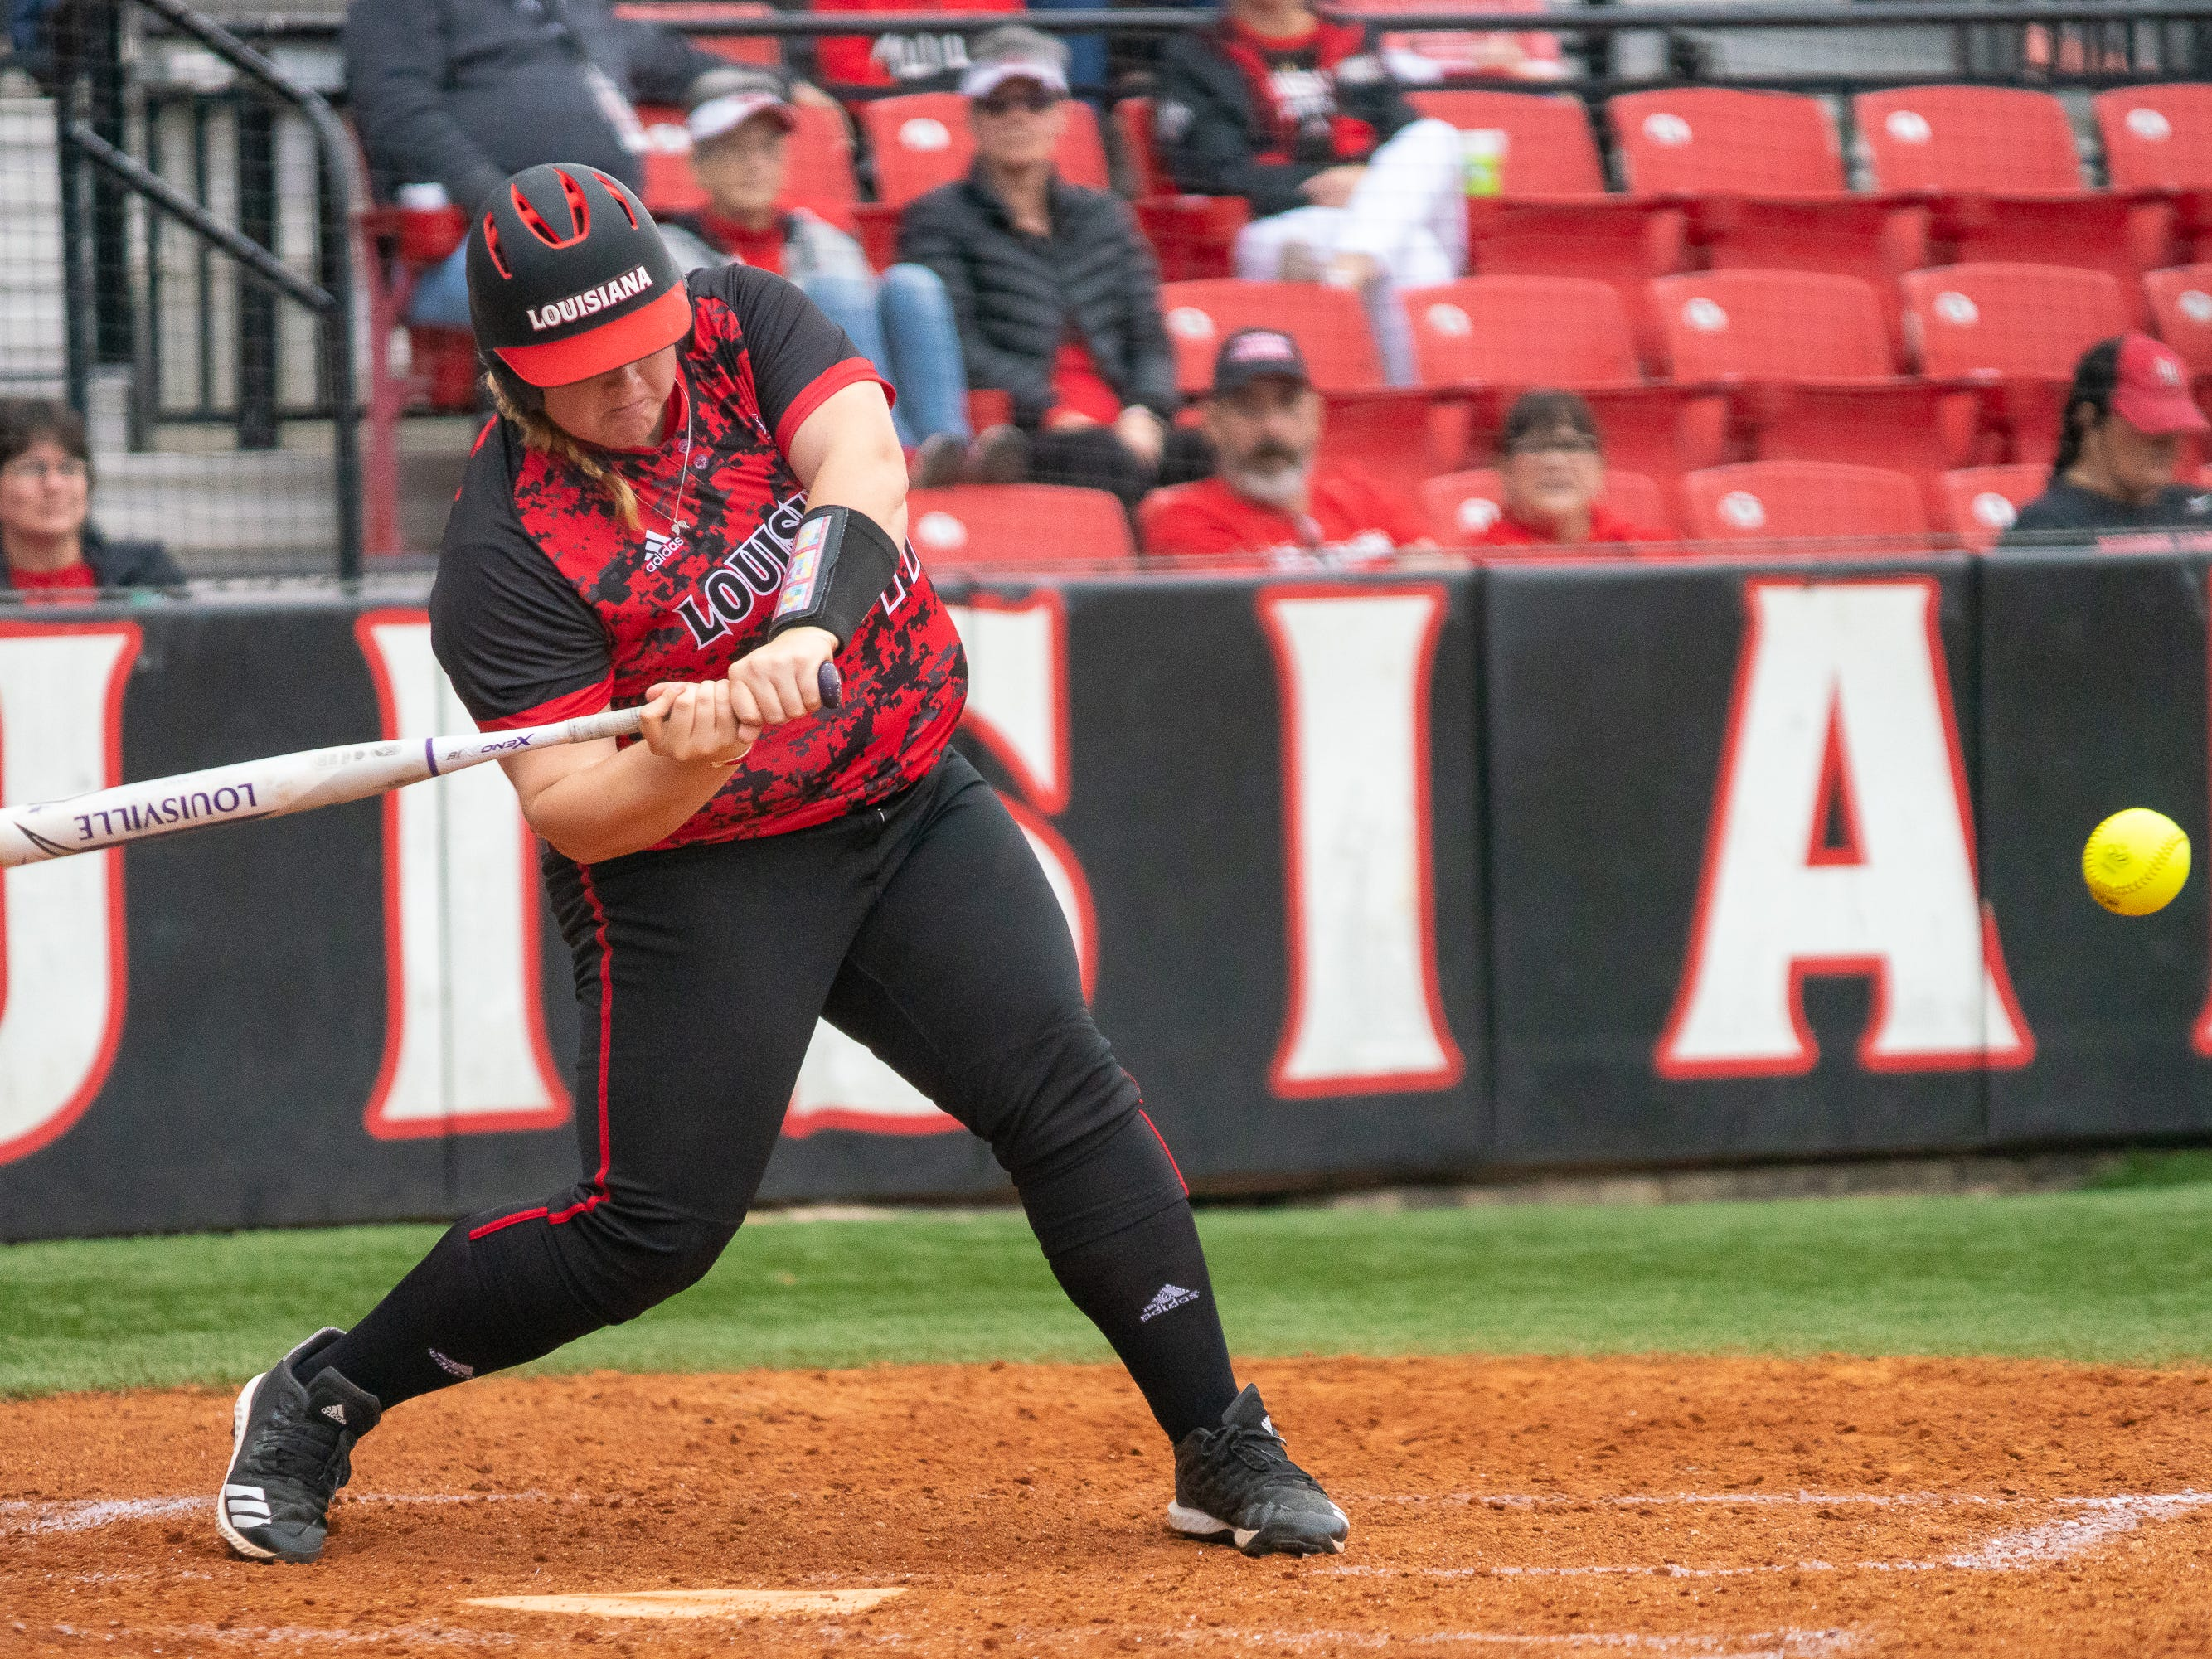 UL's Bailey Curry takes a swing at the pitch as the Ragin' Cajuns take on Stephen F. Austin at Lamson Park on Saturday, Feb. 16, 2019.